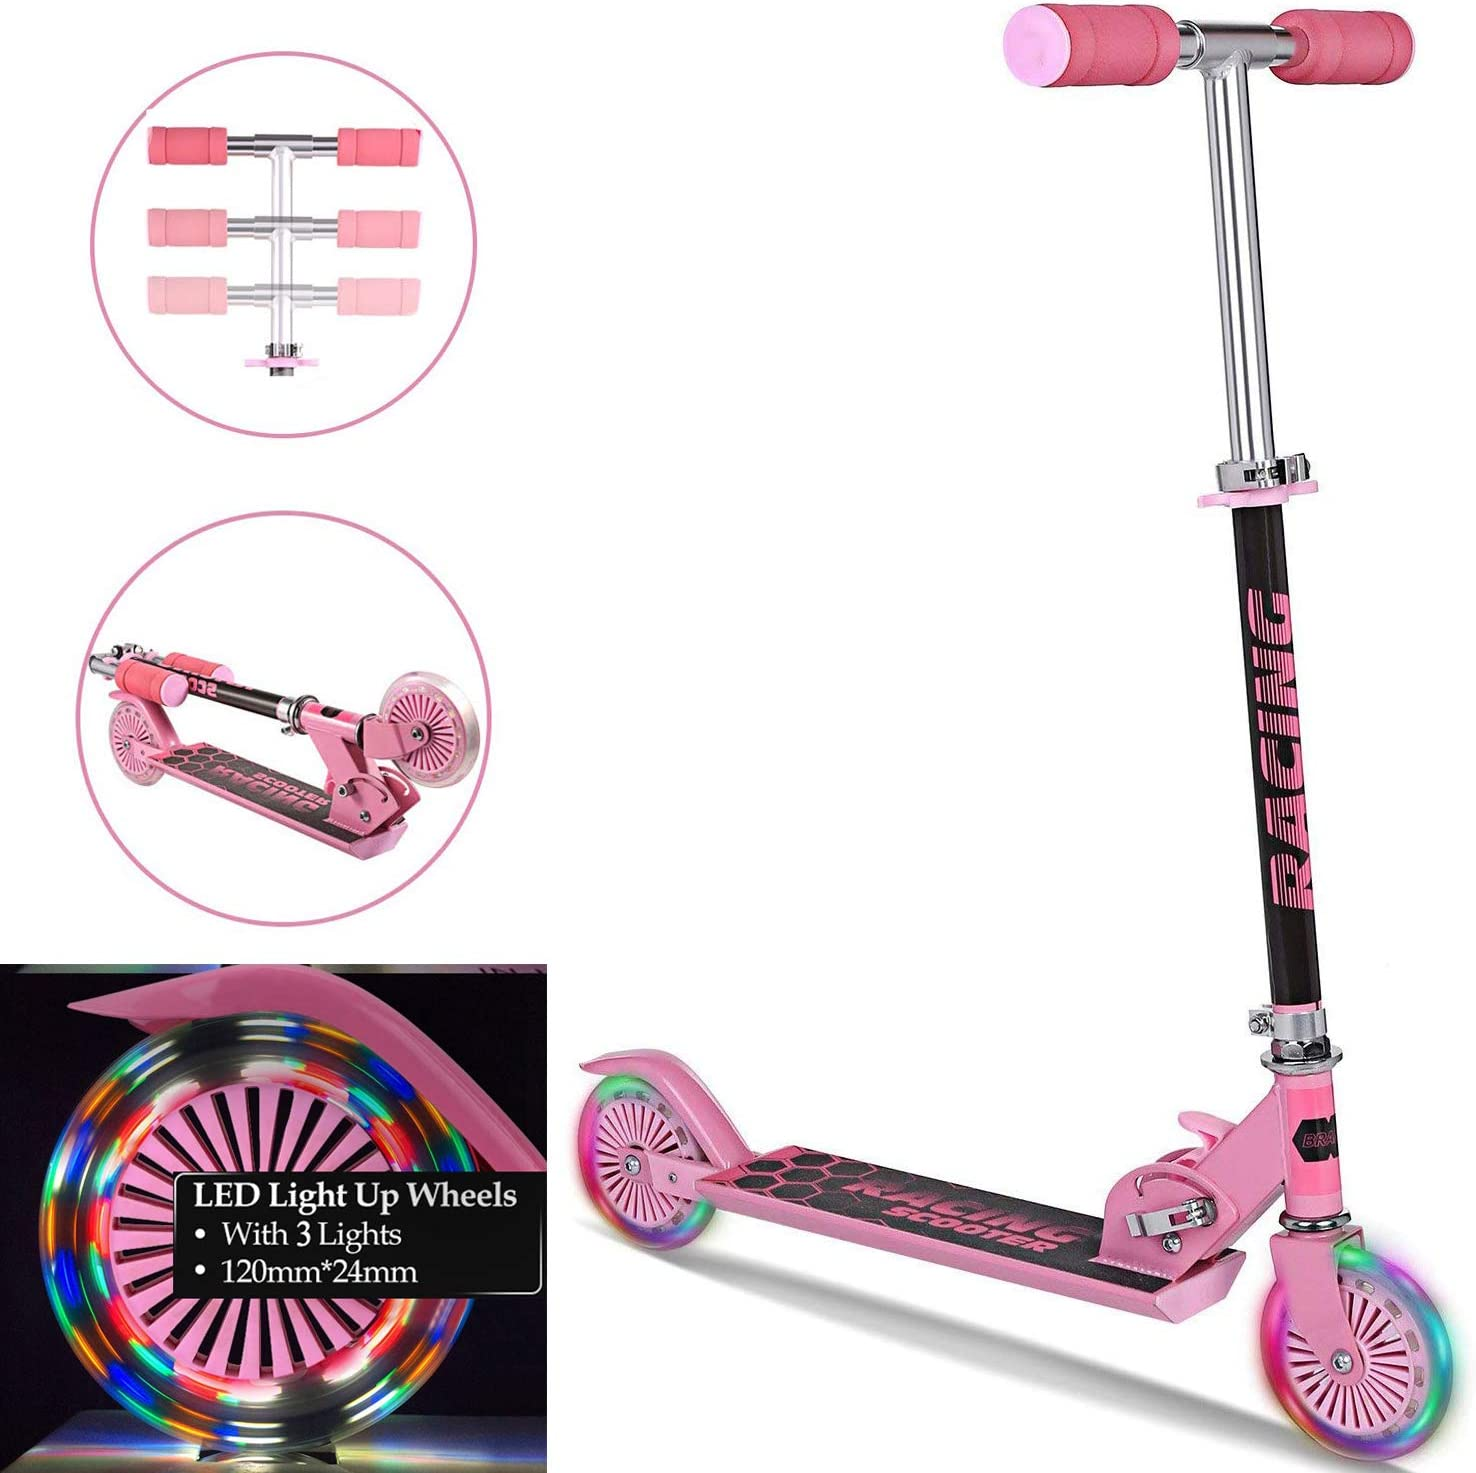 Aceshin Mini Kick Scooter Aluminum Folding Scooters with LED Light Up Wheels, Adjustable Height for Kids Girls Boys Toddler, Ages 3-8 Years